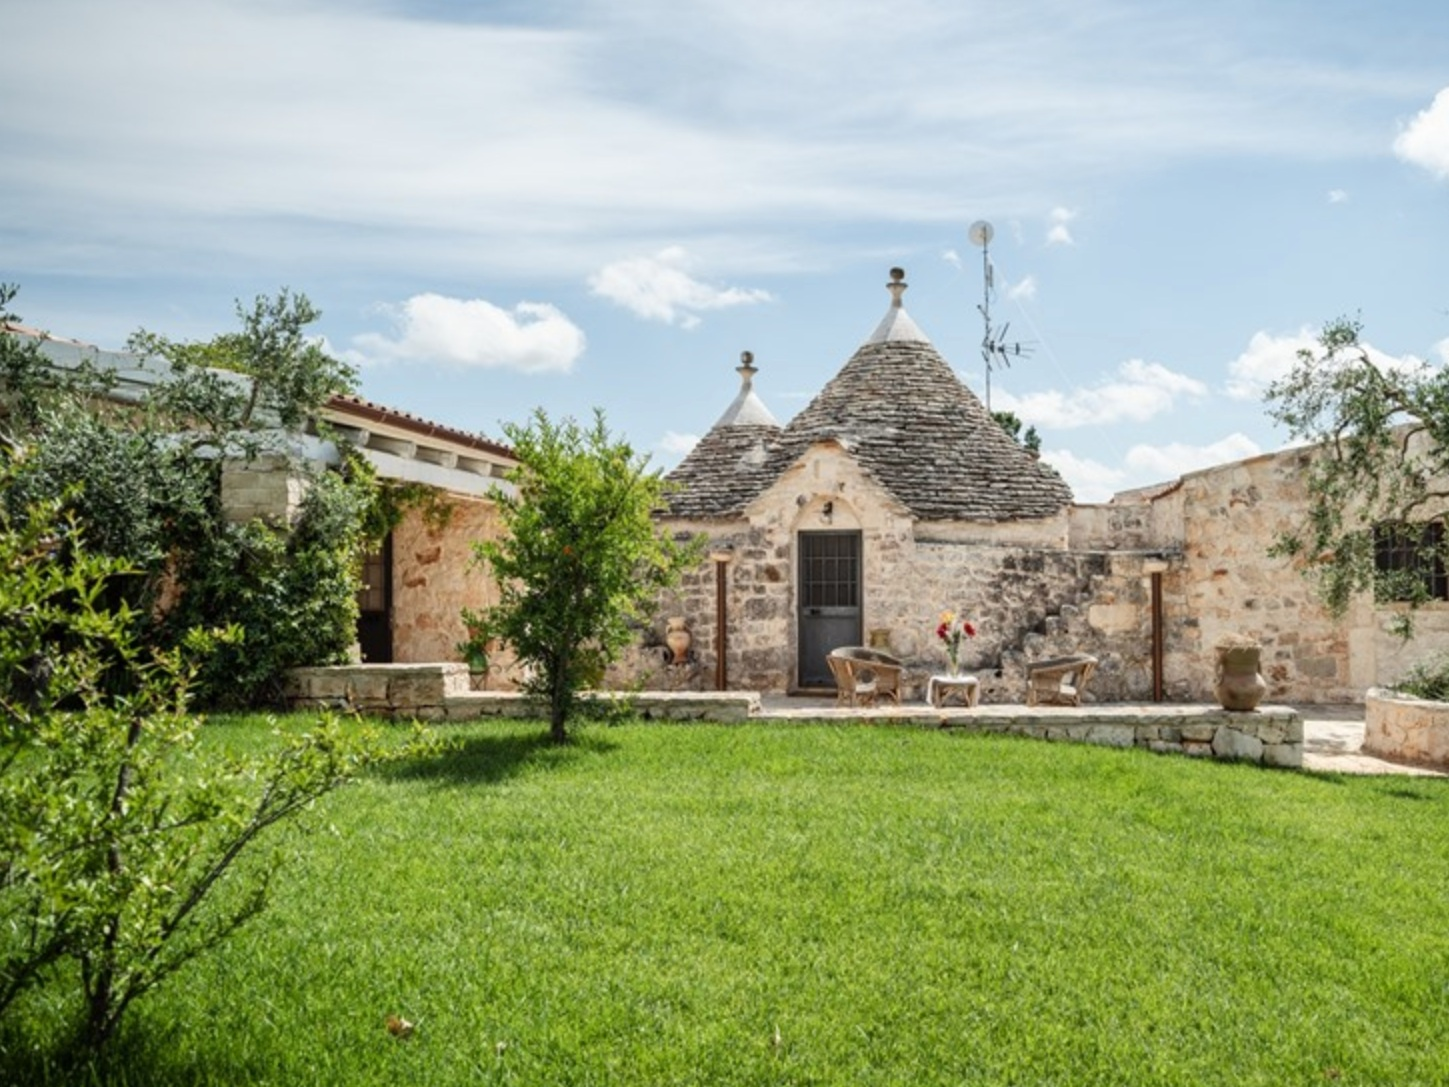 BEAUTIFUL TRULLO - CASTELLANA GROTTE - 3 BEDROOMS - 2 BATHWEEKLY PRICE FROM €1,105